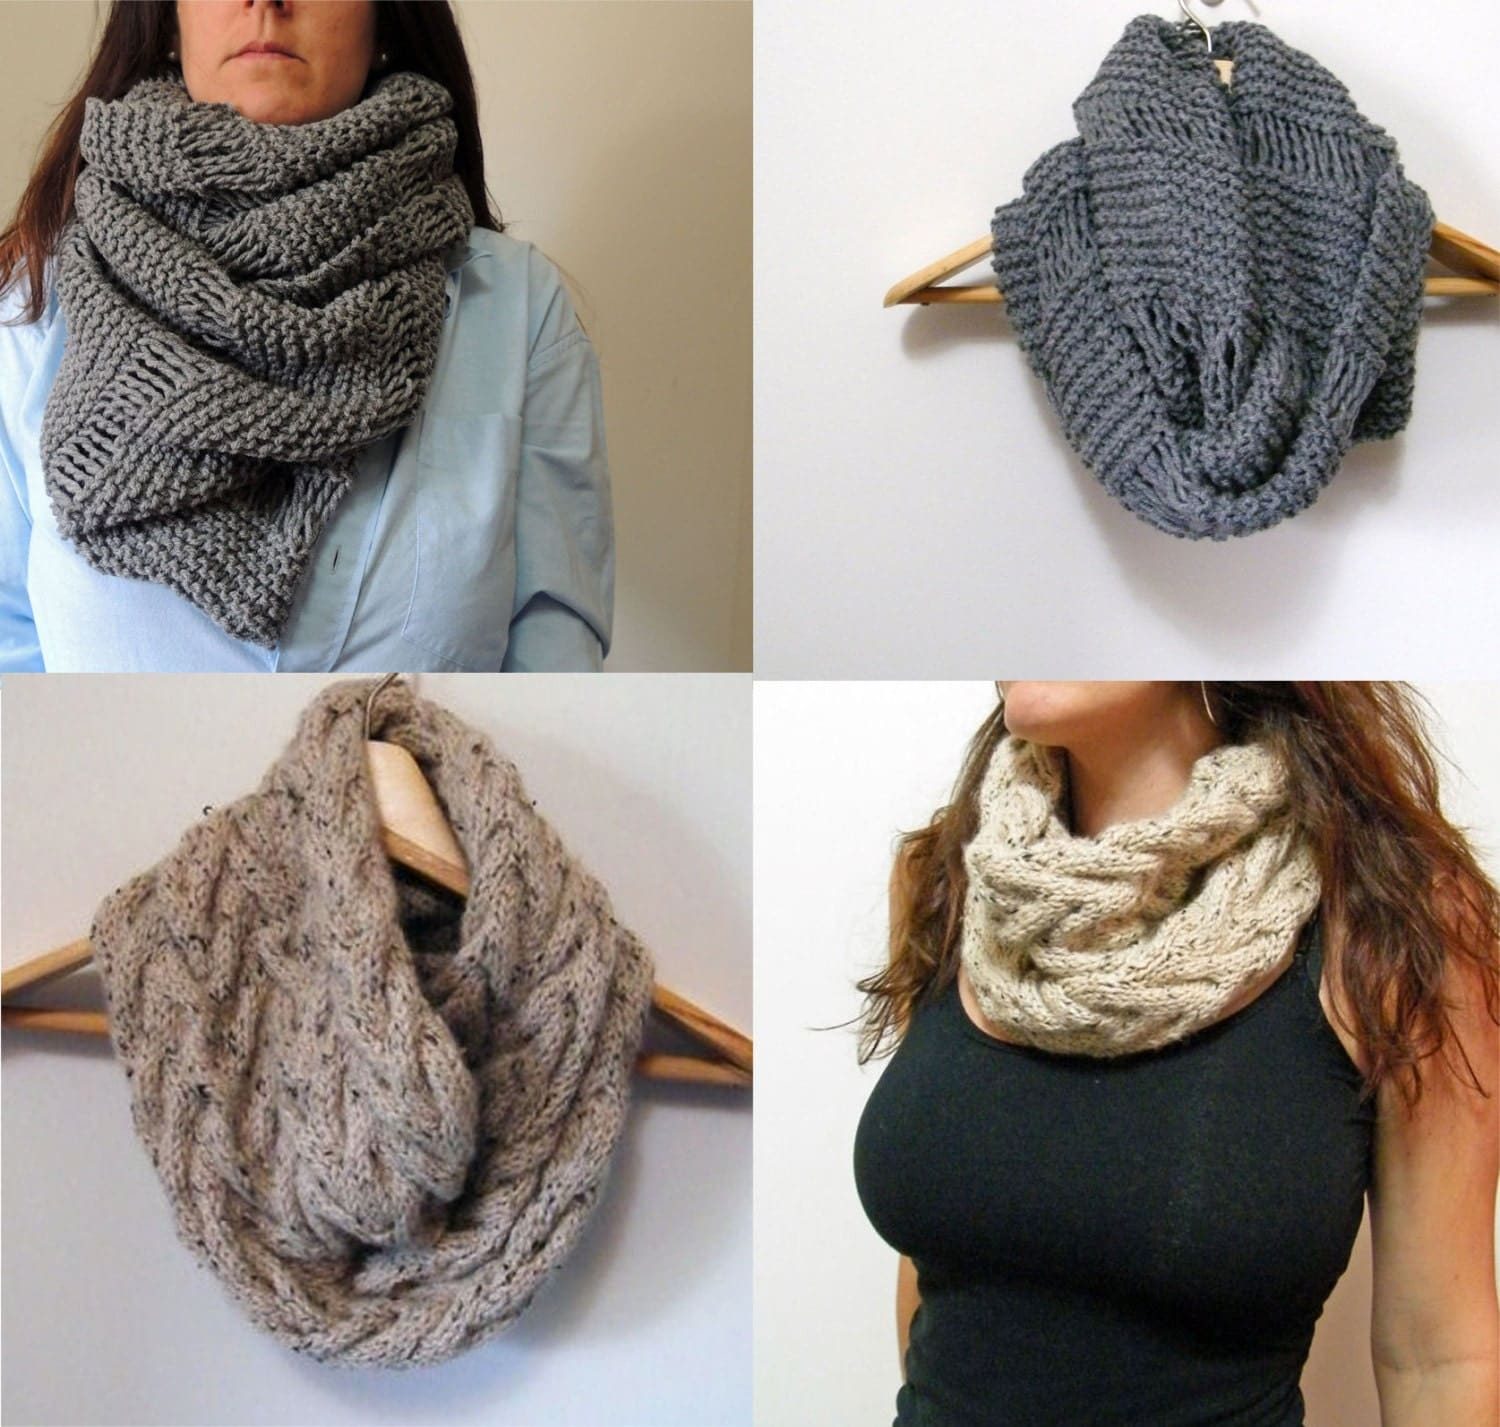 2 Knitting Patterns Oversized Cowl Infinity Scarf & by LewisKnits